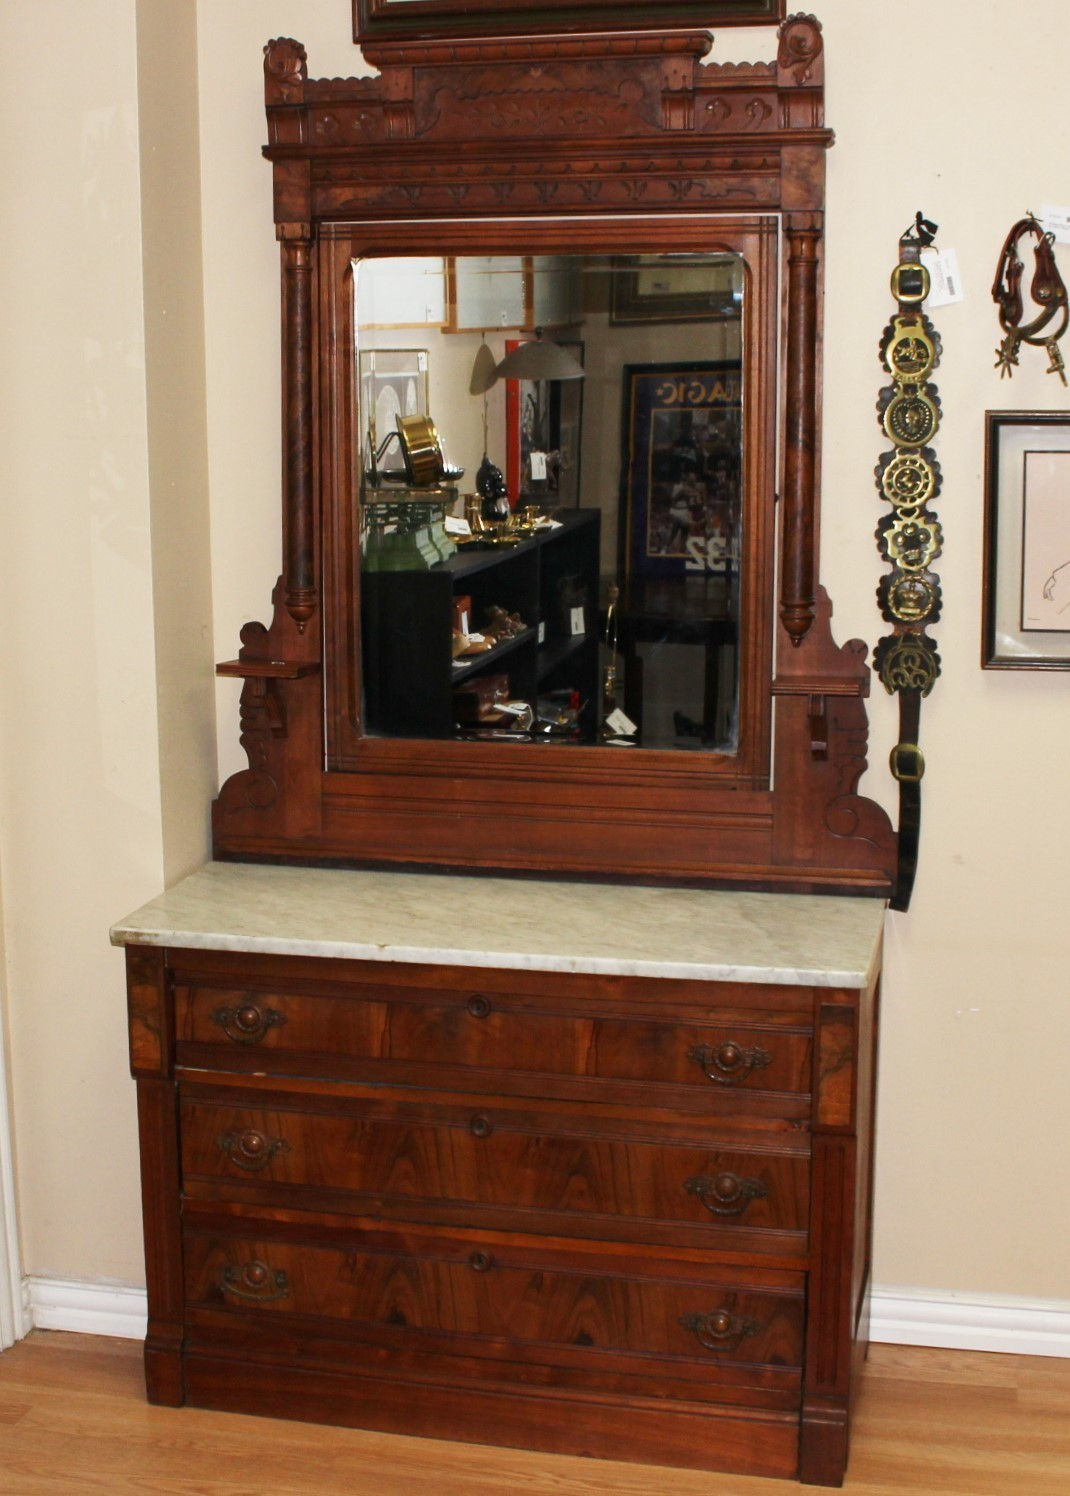 Antique Eastlake Walnut Marble Top Dresser W Mirror,How To Get Rid Of Sugar Ants In House